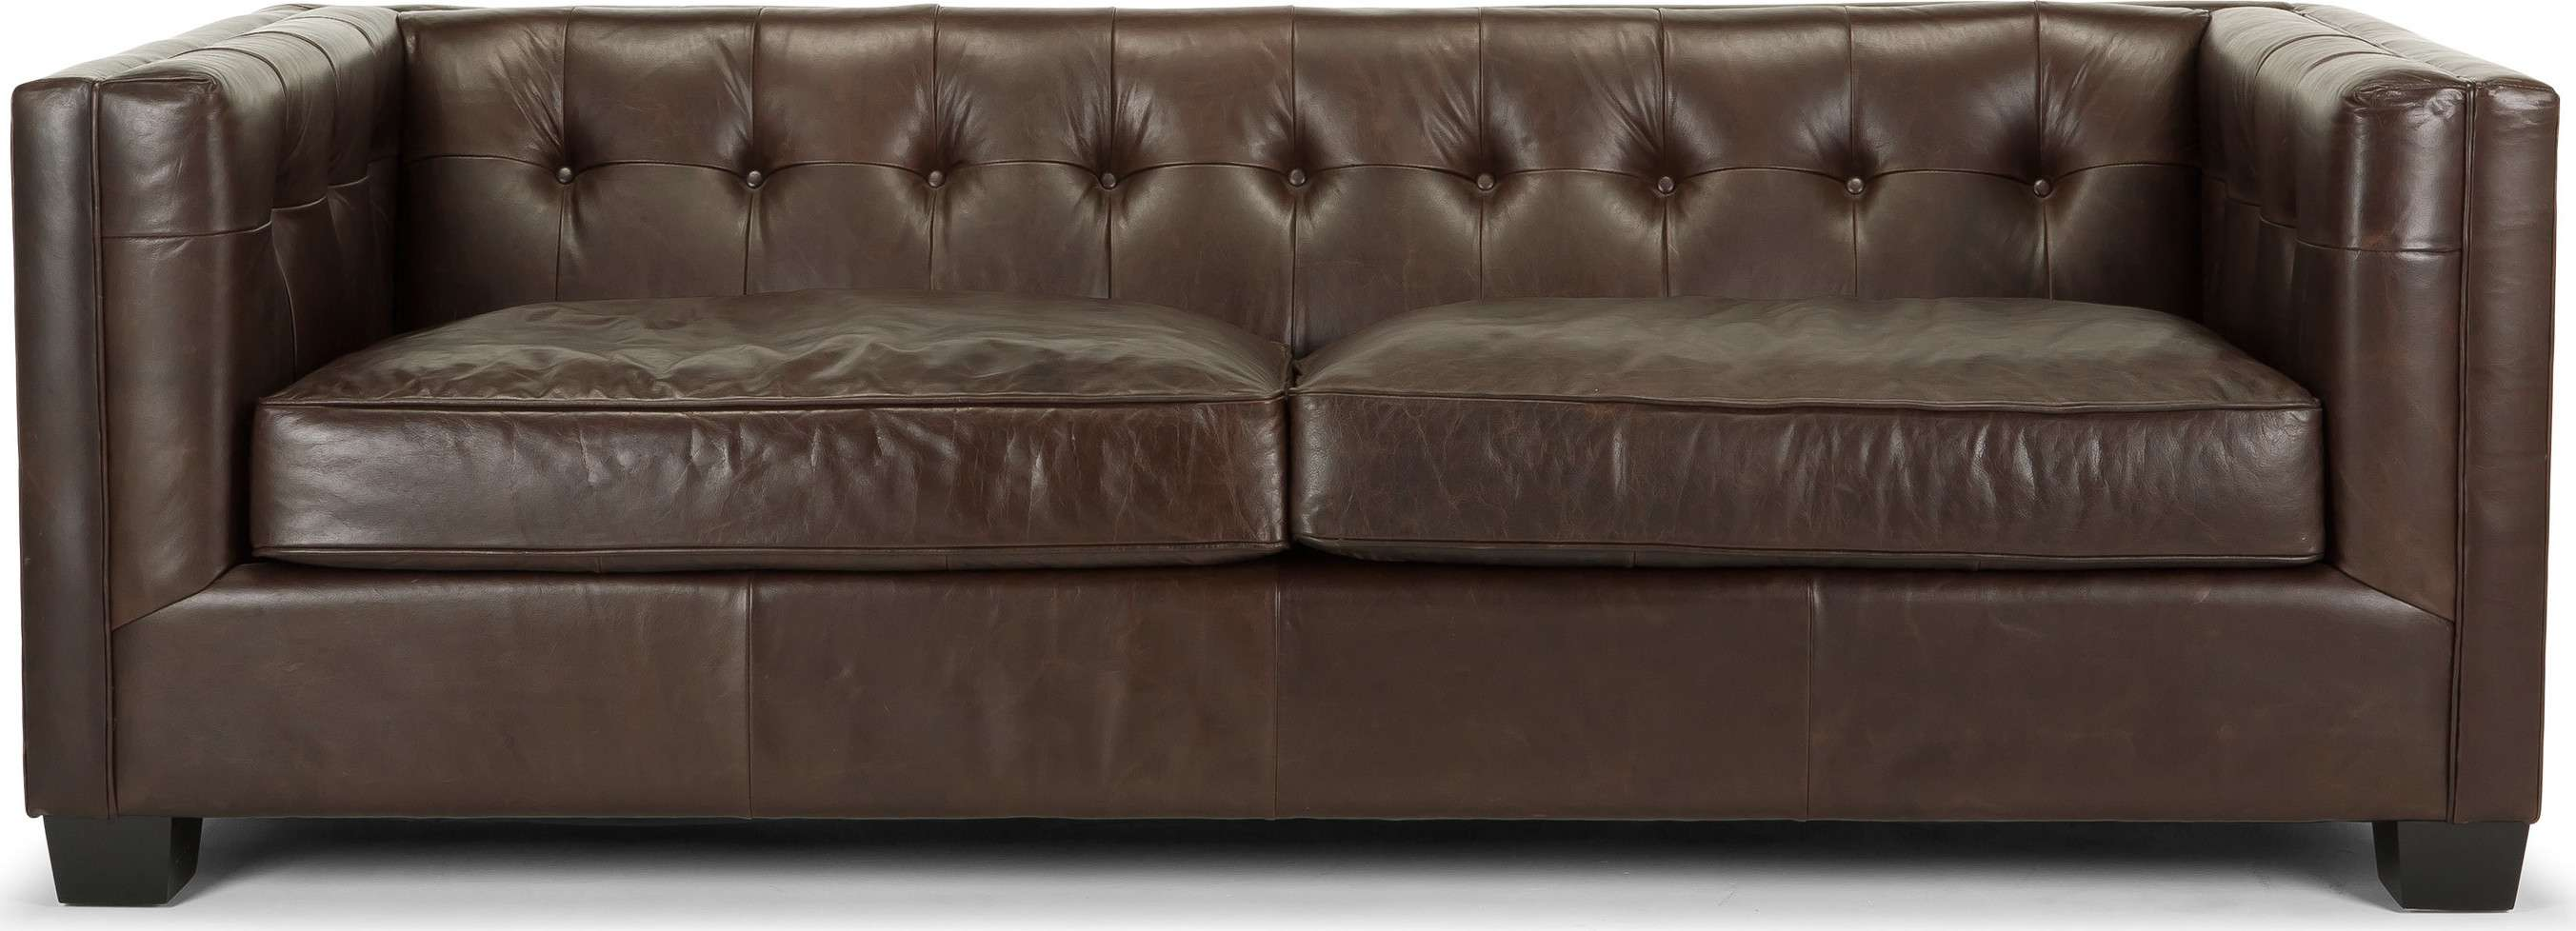 Seater Sofa Vintage Brown Based Classic Chesterfield